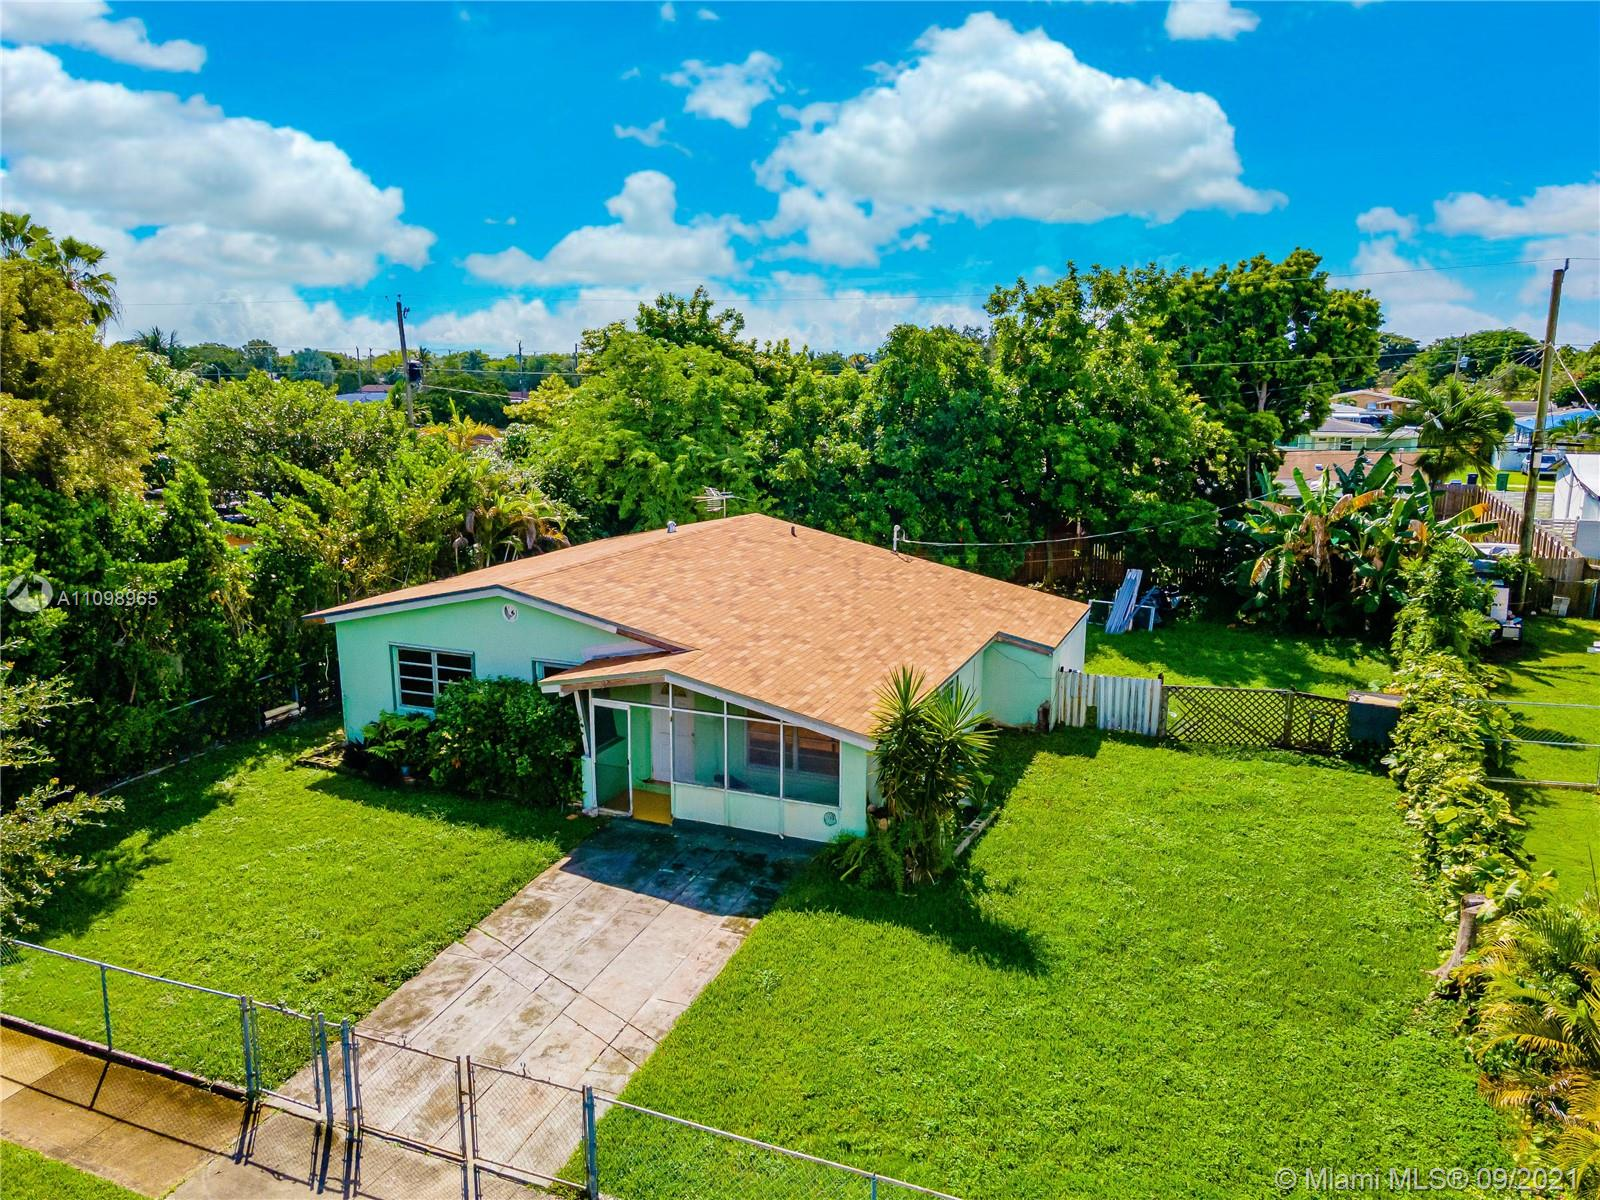 This beautiful Cozy 3 bedroom/1 bath in Cutler Bay, FL just got a new roof installed. Total area is 1435 sqft. The home features tile floors throughout and terrazzo floor in bedrooms. The den space is a bonus, it offers more room for customization. The back yard offers a tropical Island feel with large fruit trees including avacado, ackee tree and banana trees. You really might think your on a Caribbean Island somewhere. The Huge backyard and side yard is spacious enough for a pool/addition to the house, a boat or RV you name it. Located just minutes to shopping malls, restaurants, and highways. This home only awaits your imagination and a few touch ups  and personalized updates to make it your ideal Florida home a real tropical paradise.